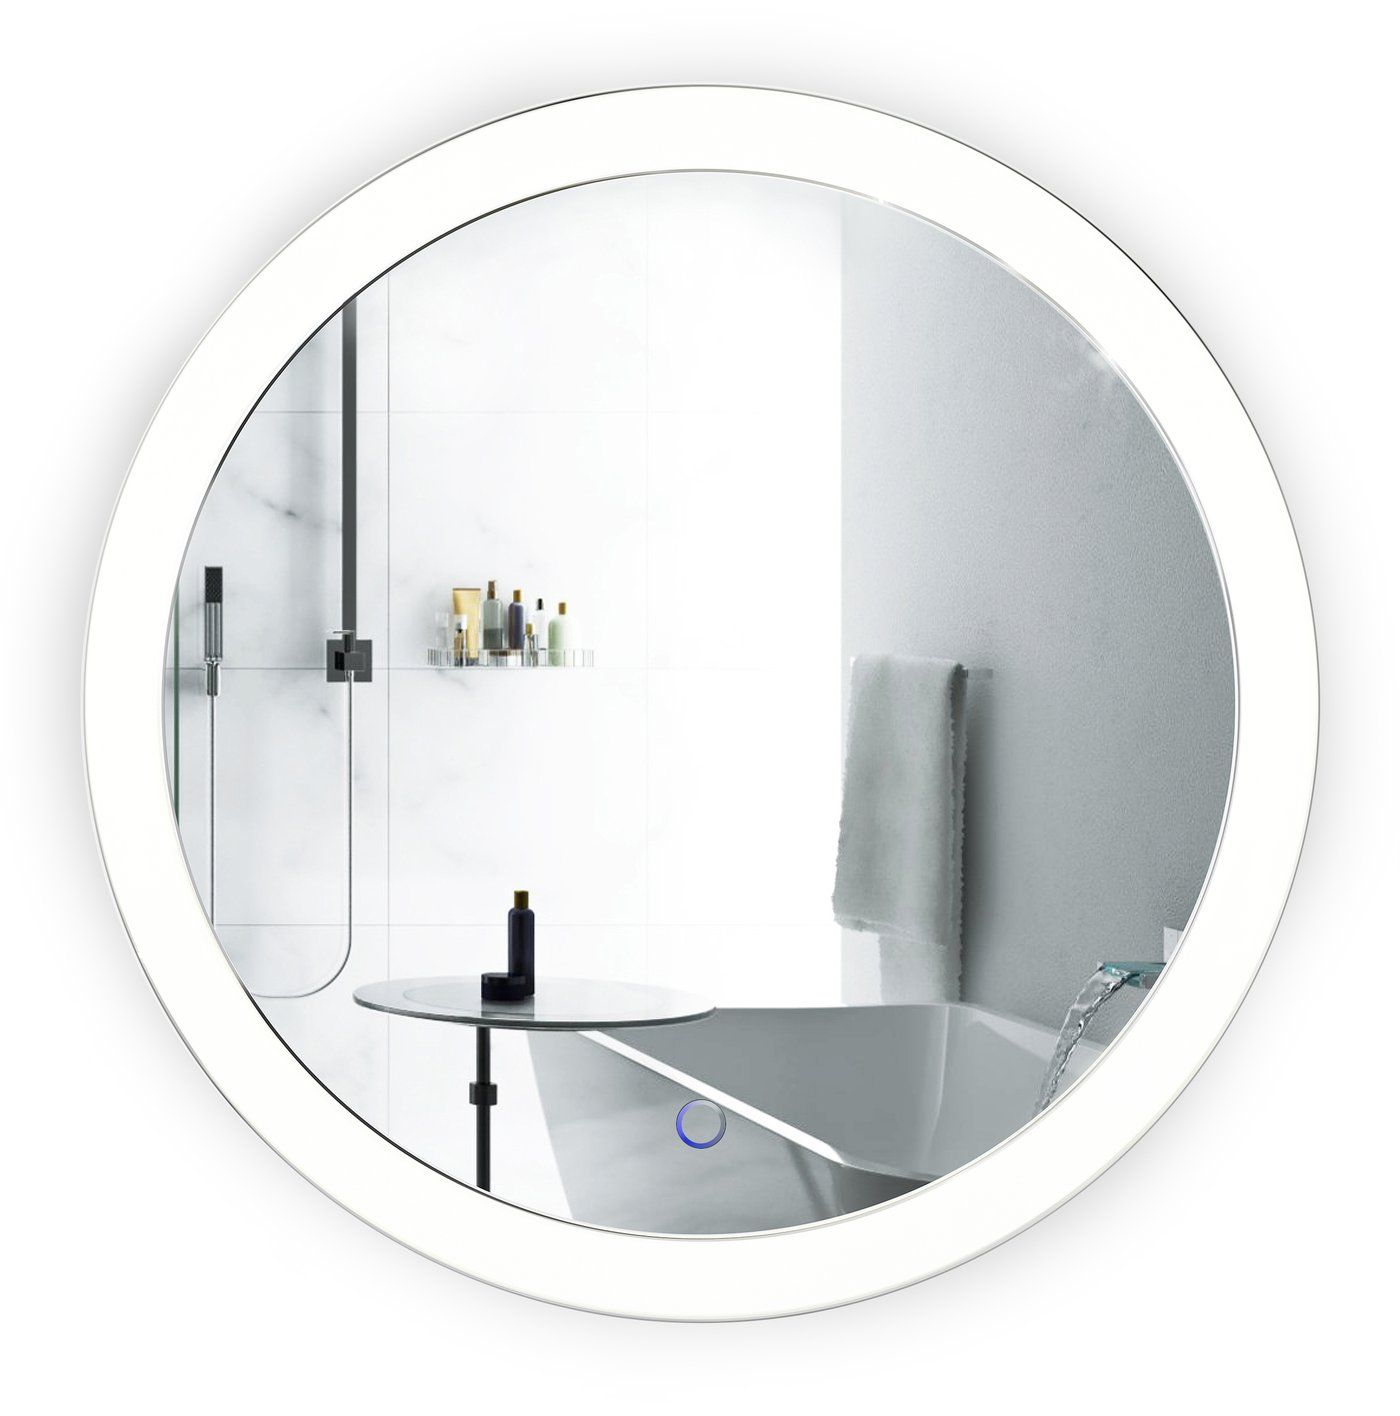 Round Bathroom Vanity Mirror With Lights Sol Valientlux Round Mirror Bathroom Lighted